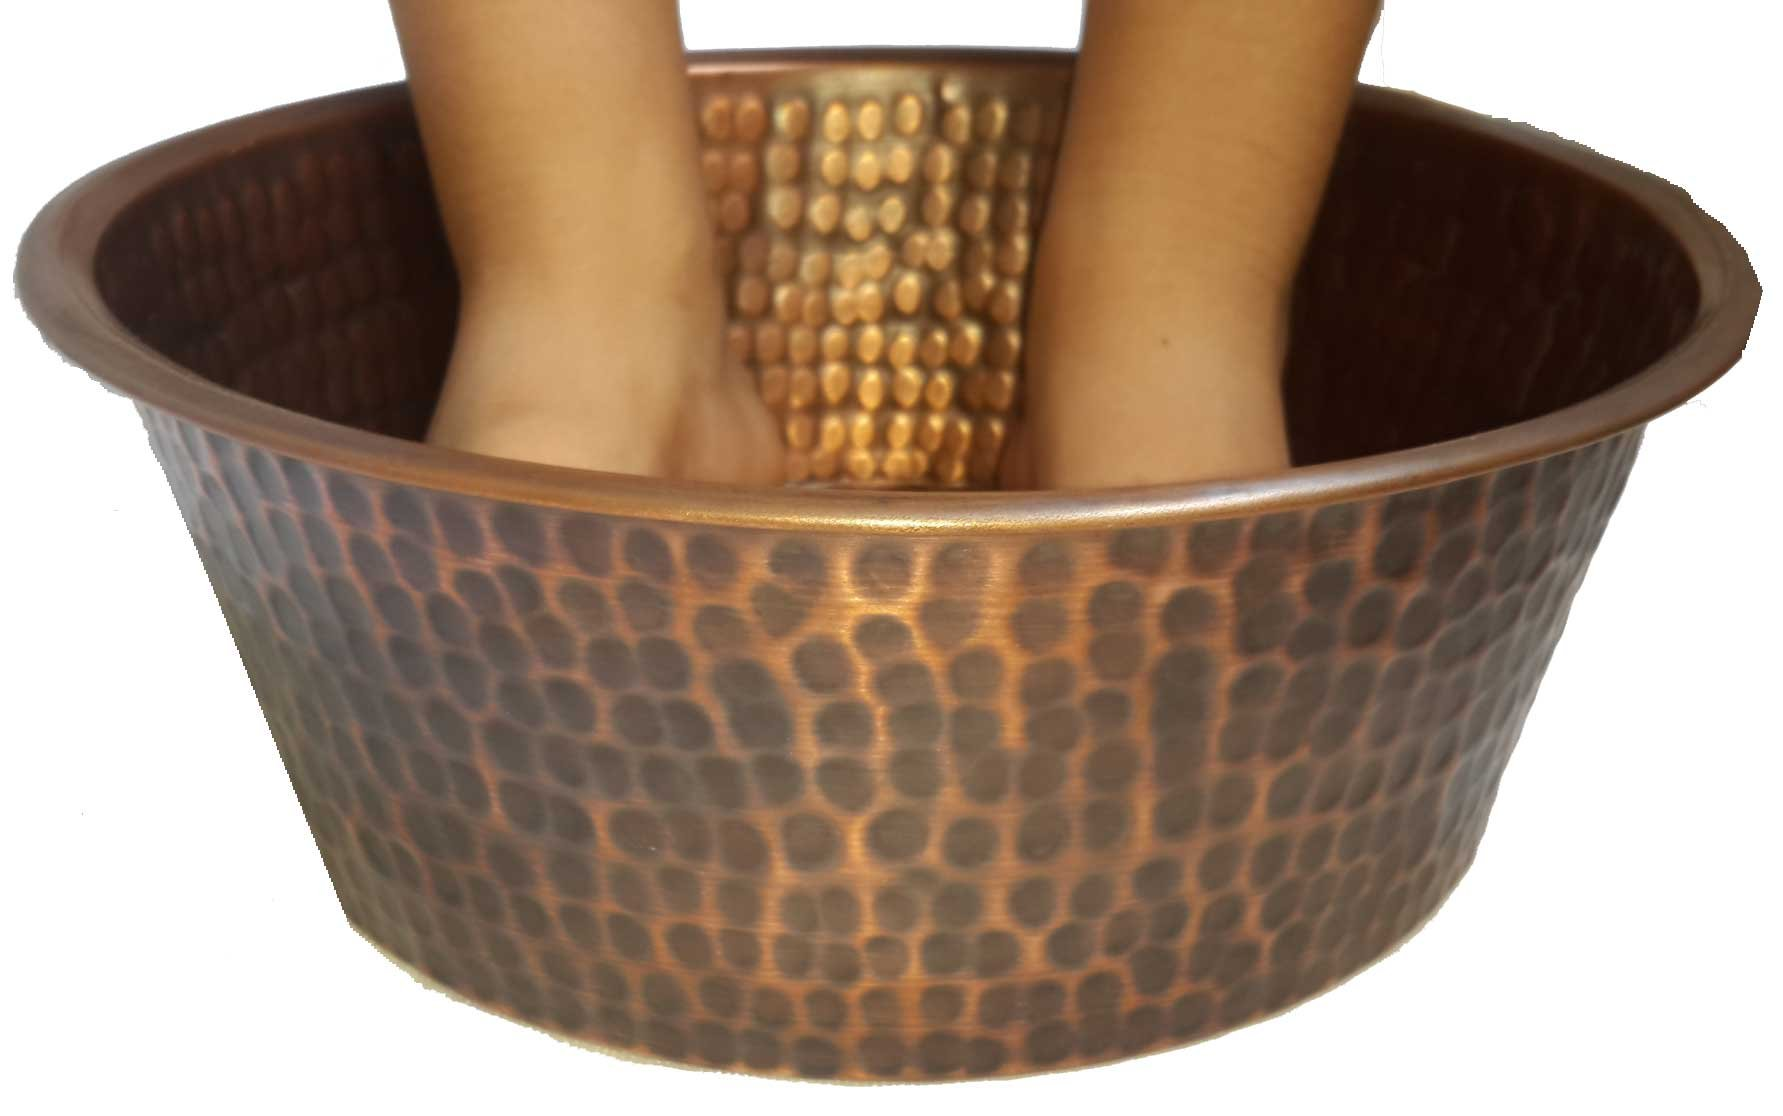 Egypt gift shops SMALL Petite Antique Finish Pedicure Spa Foot Bath Soak Massage Copper Bowl by Egypt gift shops (Image #2)